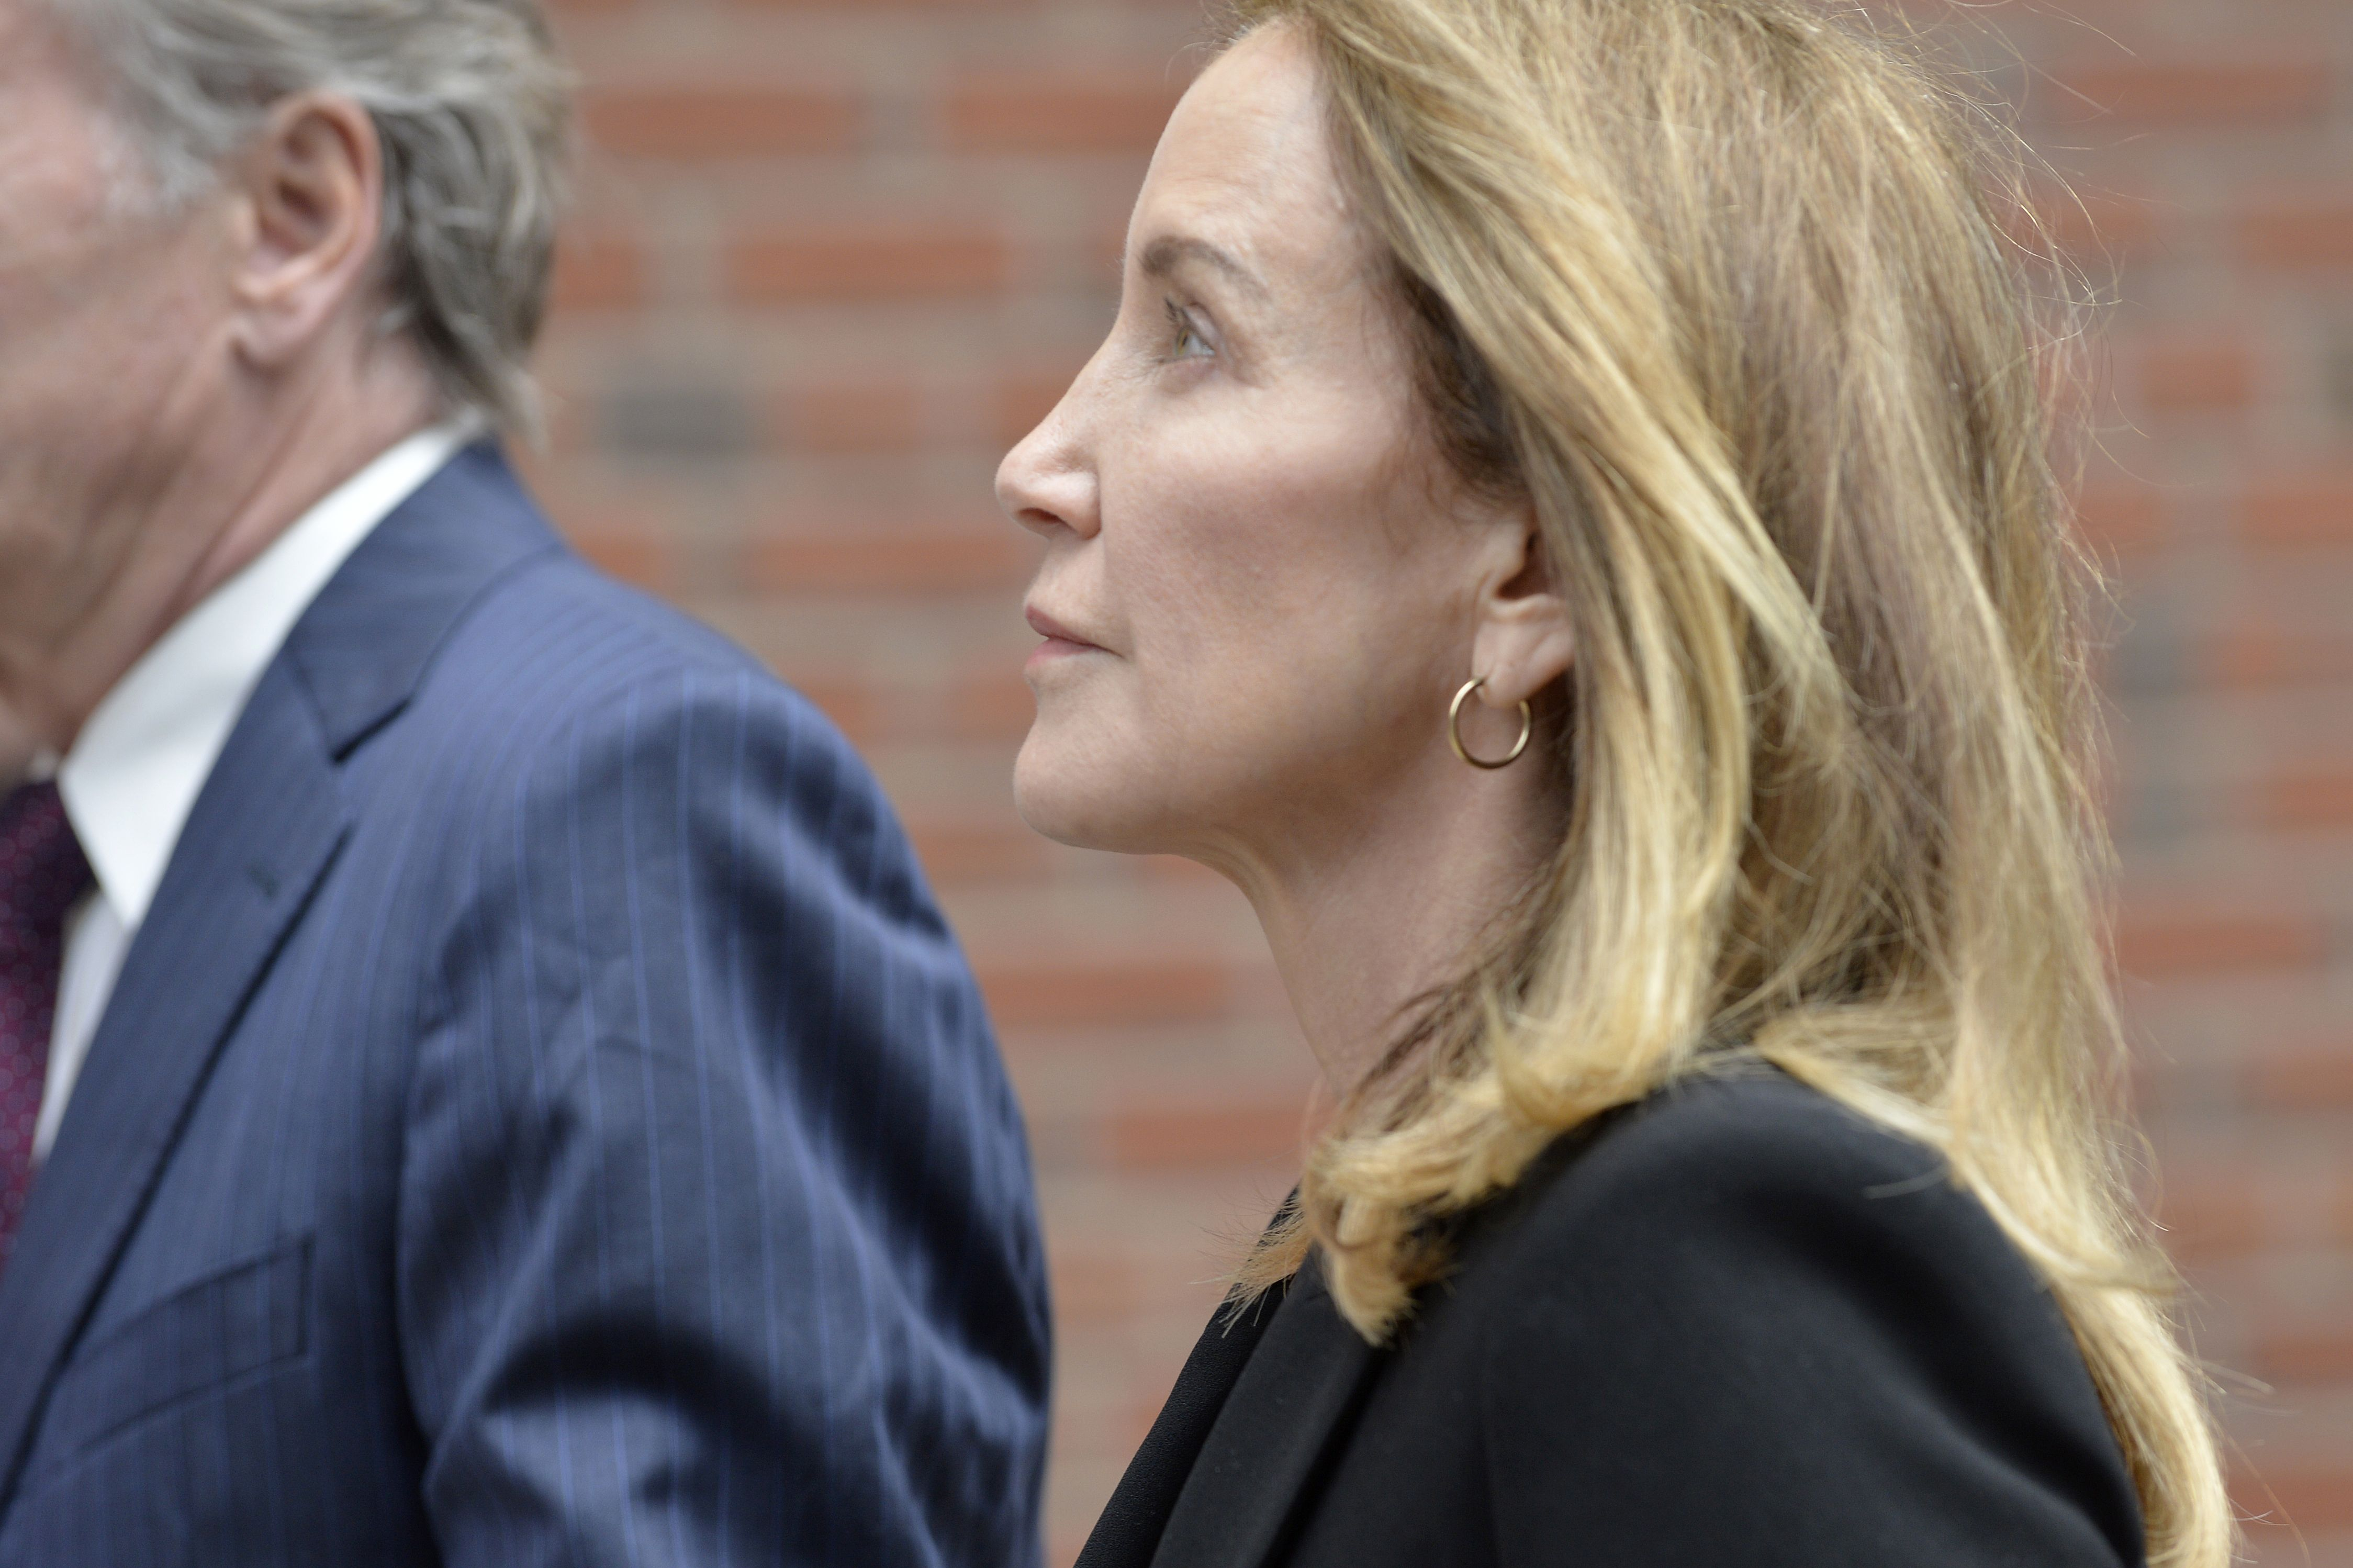 Actress Felicity Huffman is escorted by police into court where she is expected to plead guilty to one count of conspiracy to commit mail fraud and honest services mail fraud before Judge Talwani at John Joseph Moakley United States Courthouse in Boston, Massachusetts, May 13, 2019. (Photo credit JOSEPH PREZIOSO/AFP/Getty Images)